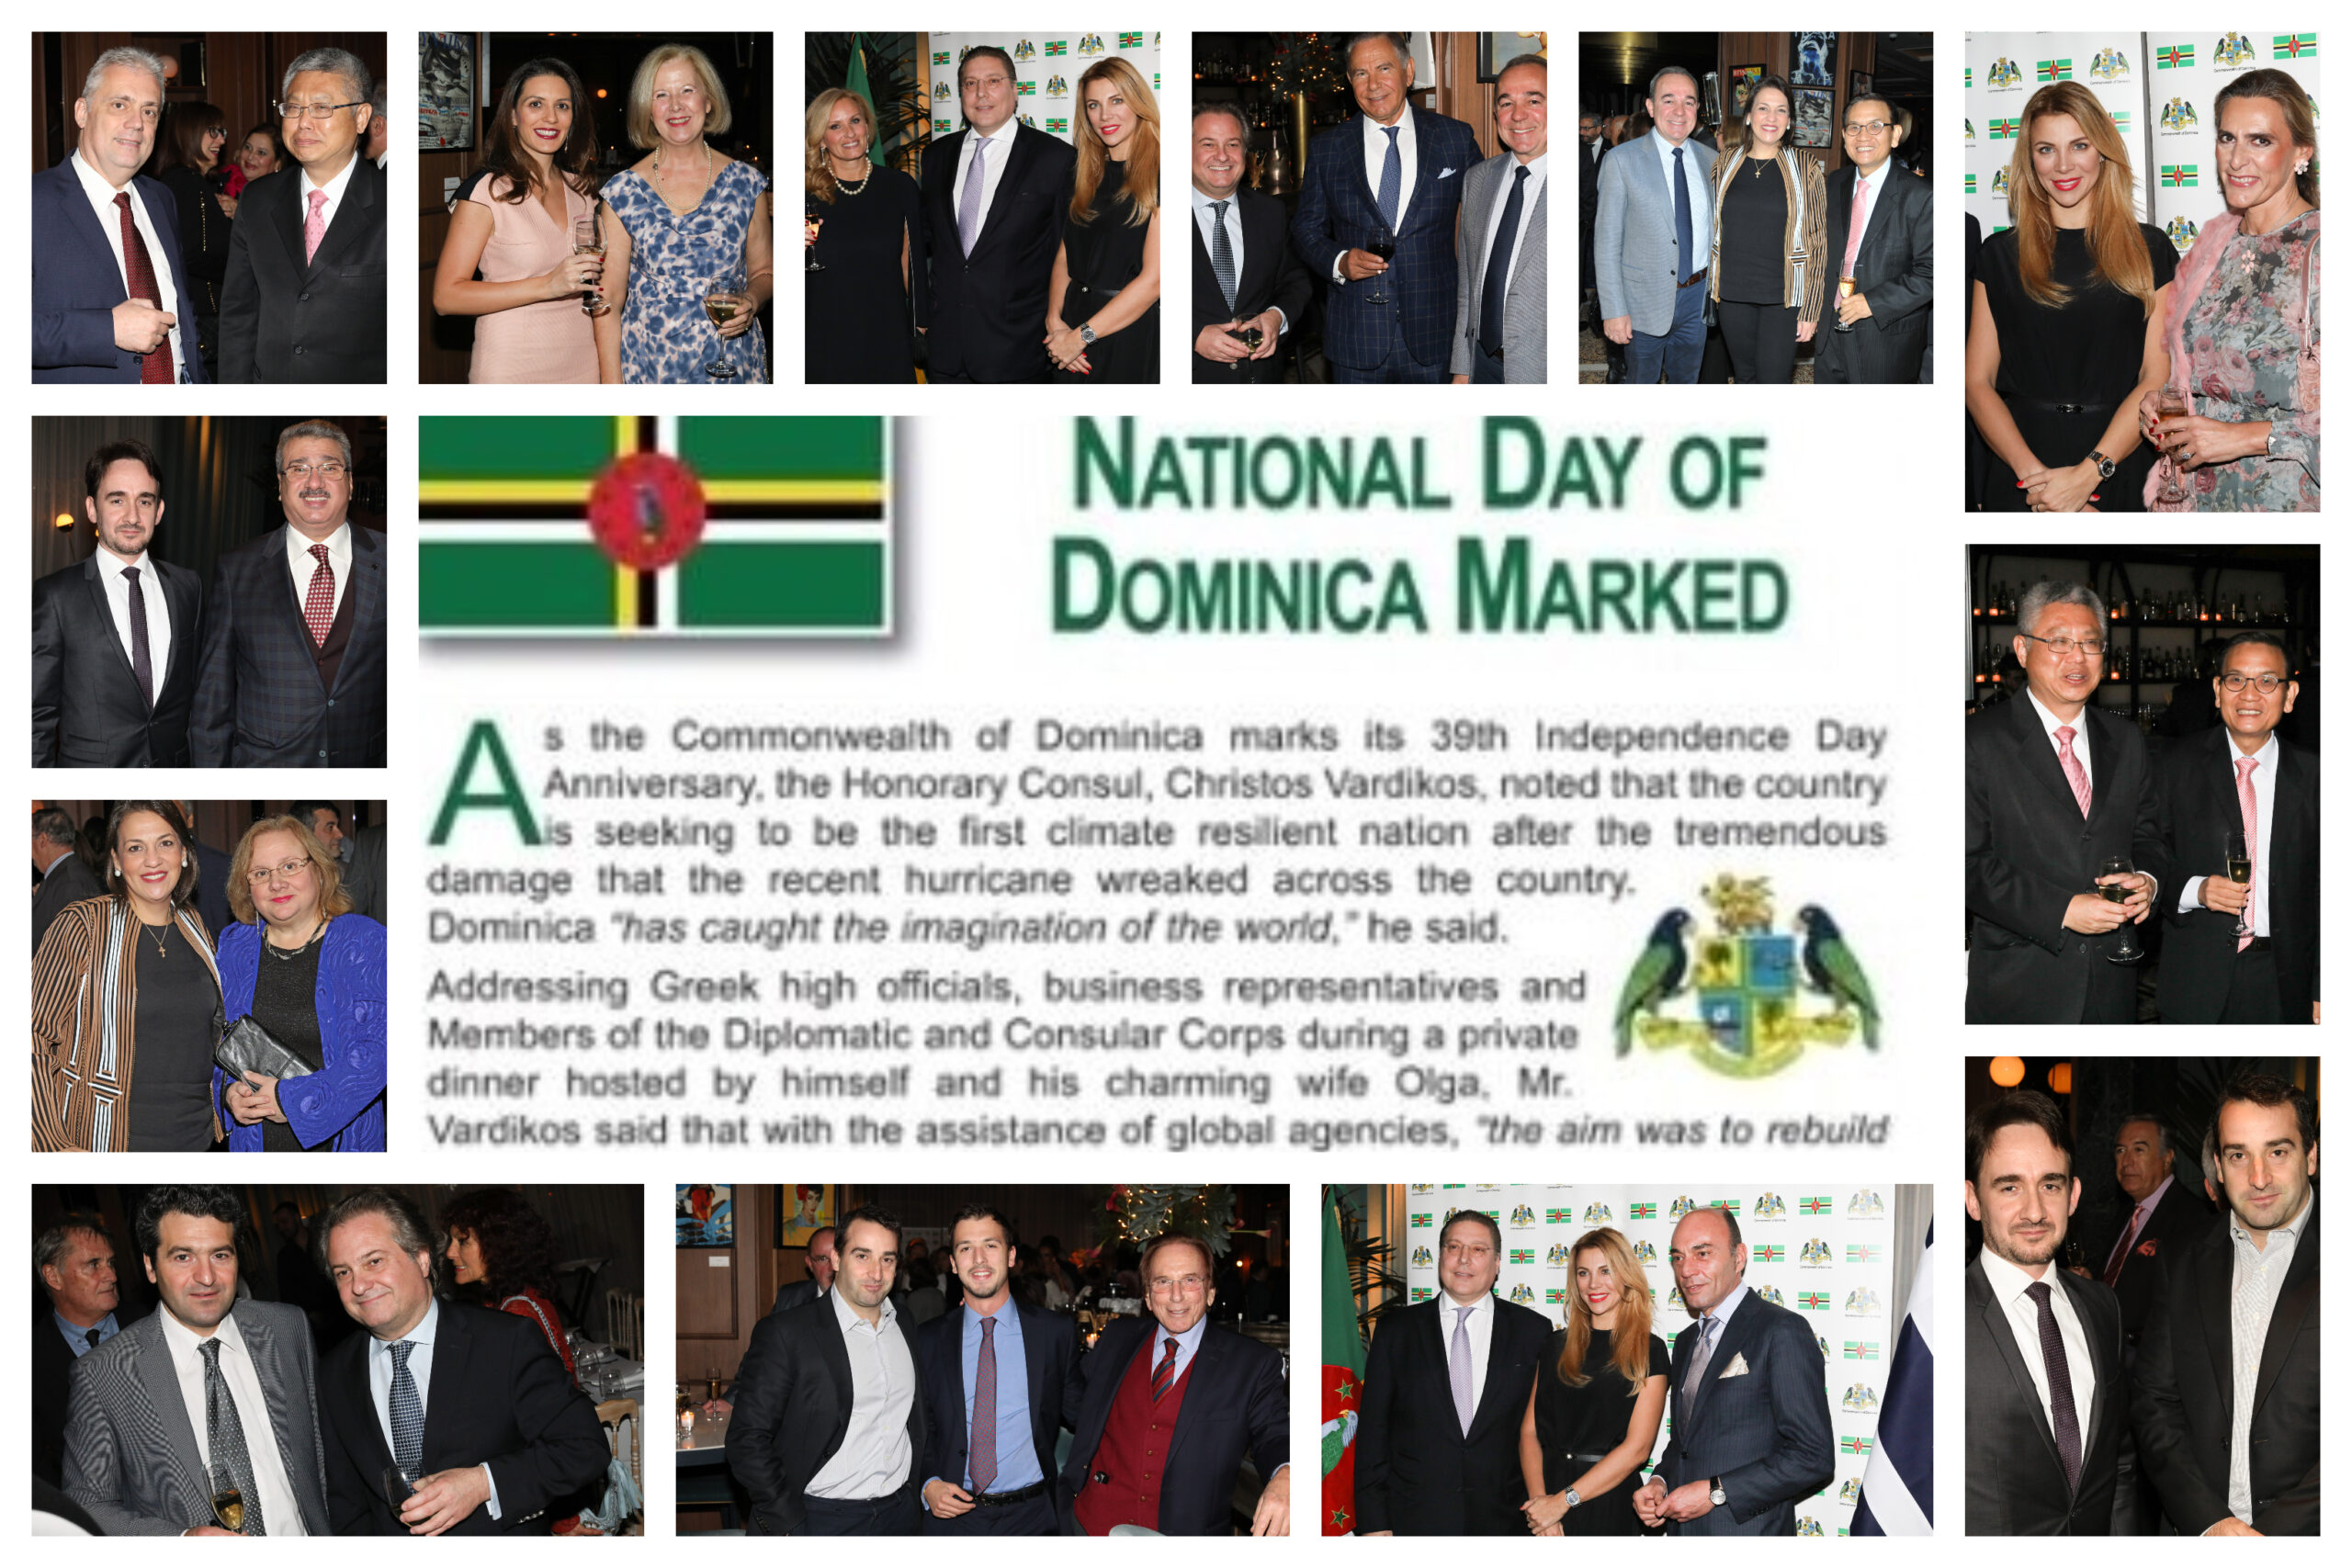 Dominica National Day 2018